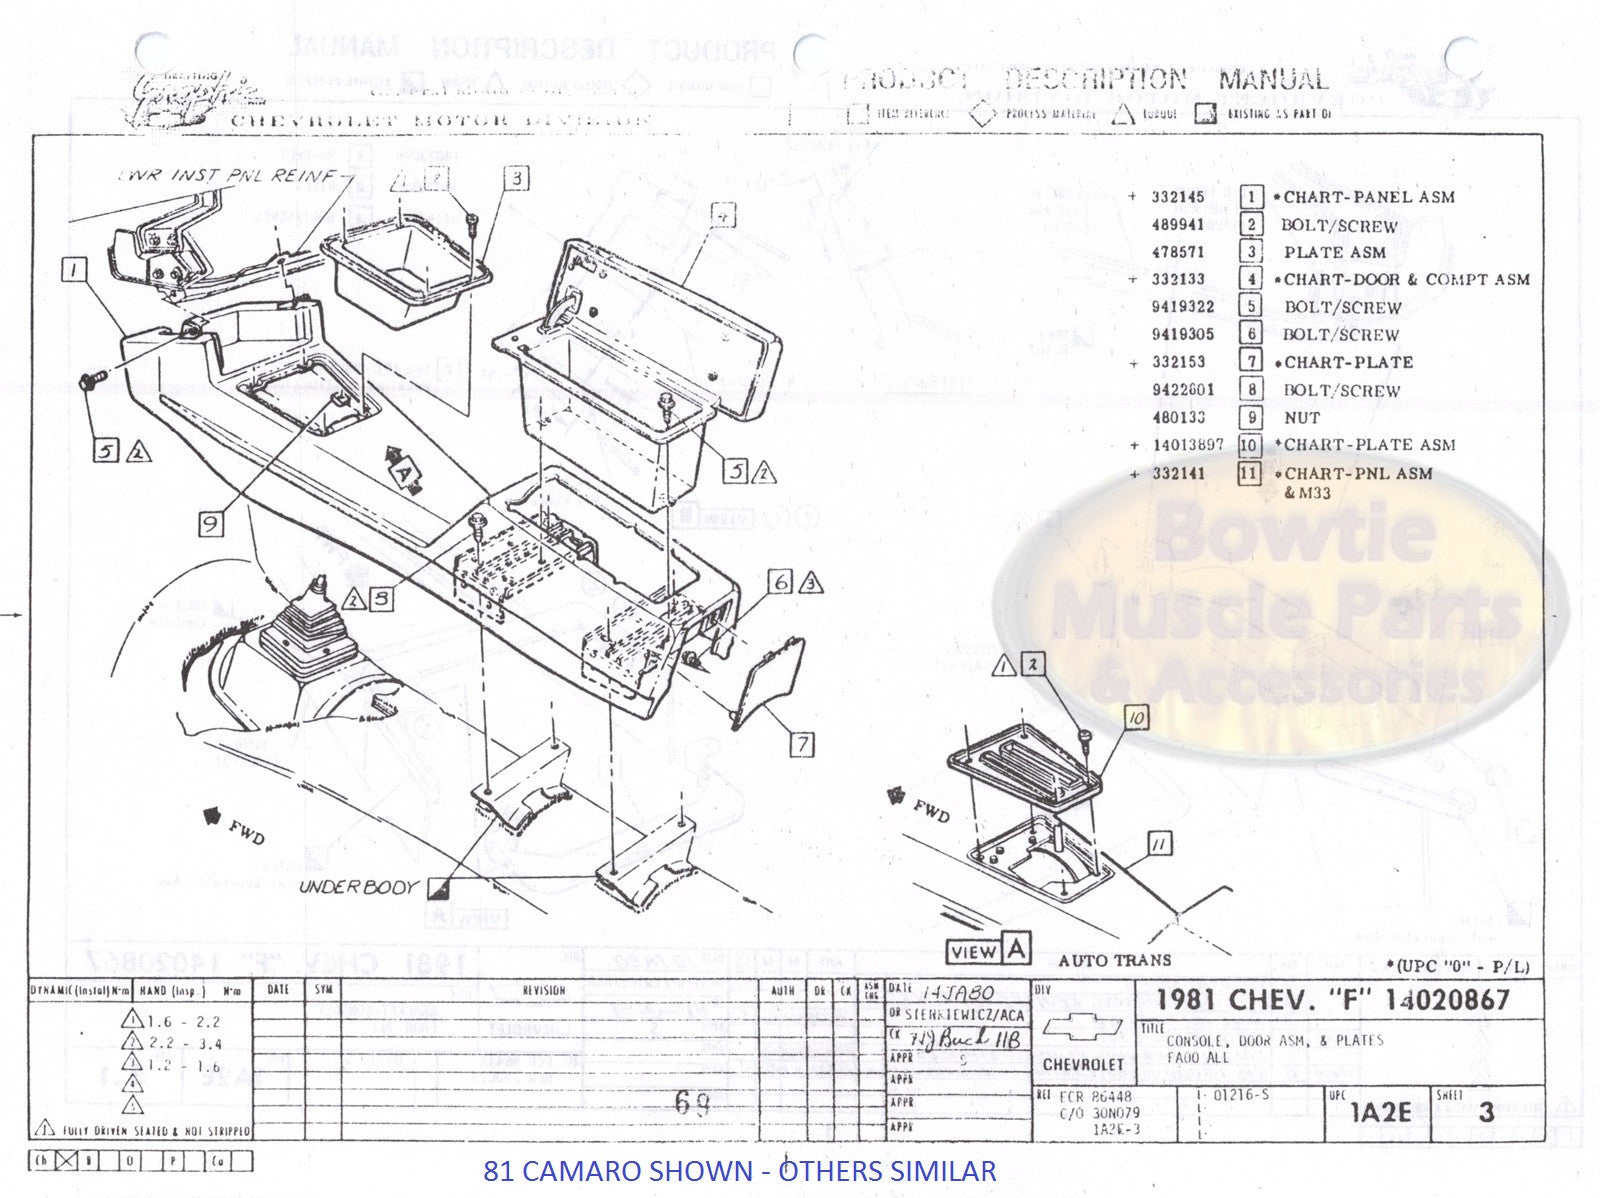 [SCHEMATICS_48YU]  1986 86 Camaro Factory Assembly Manual Z28 - 609 Pages! | BowtieMuscleParts | 1986 Camaro Engine Diagram |  | Bowtie Muscle Parts and Accessories